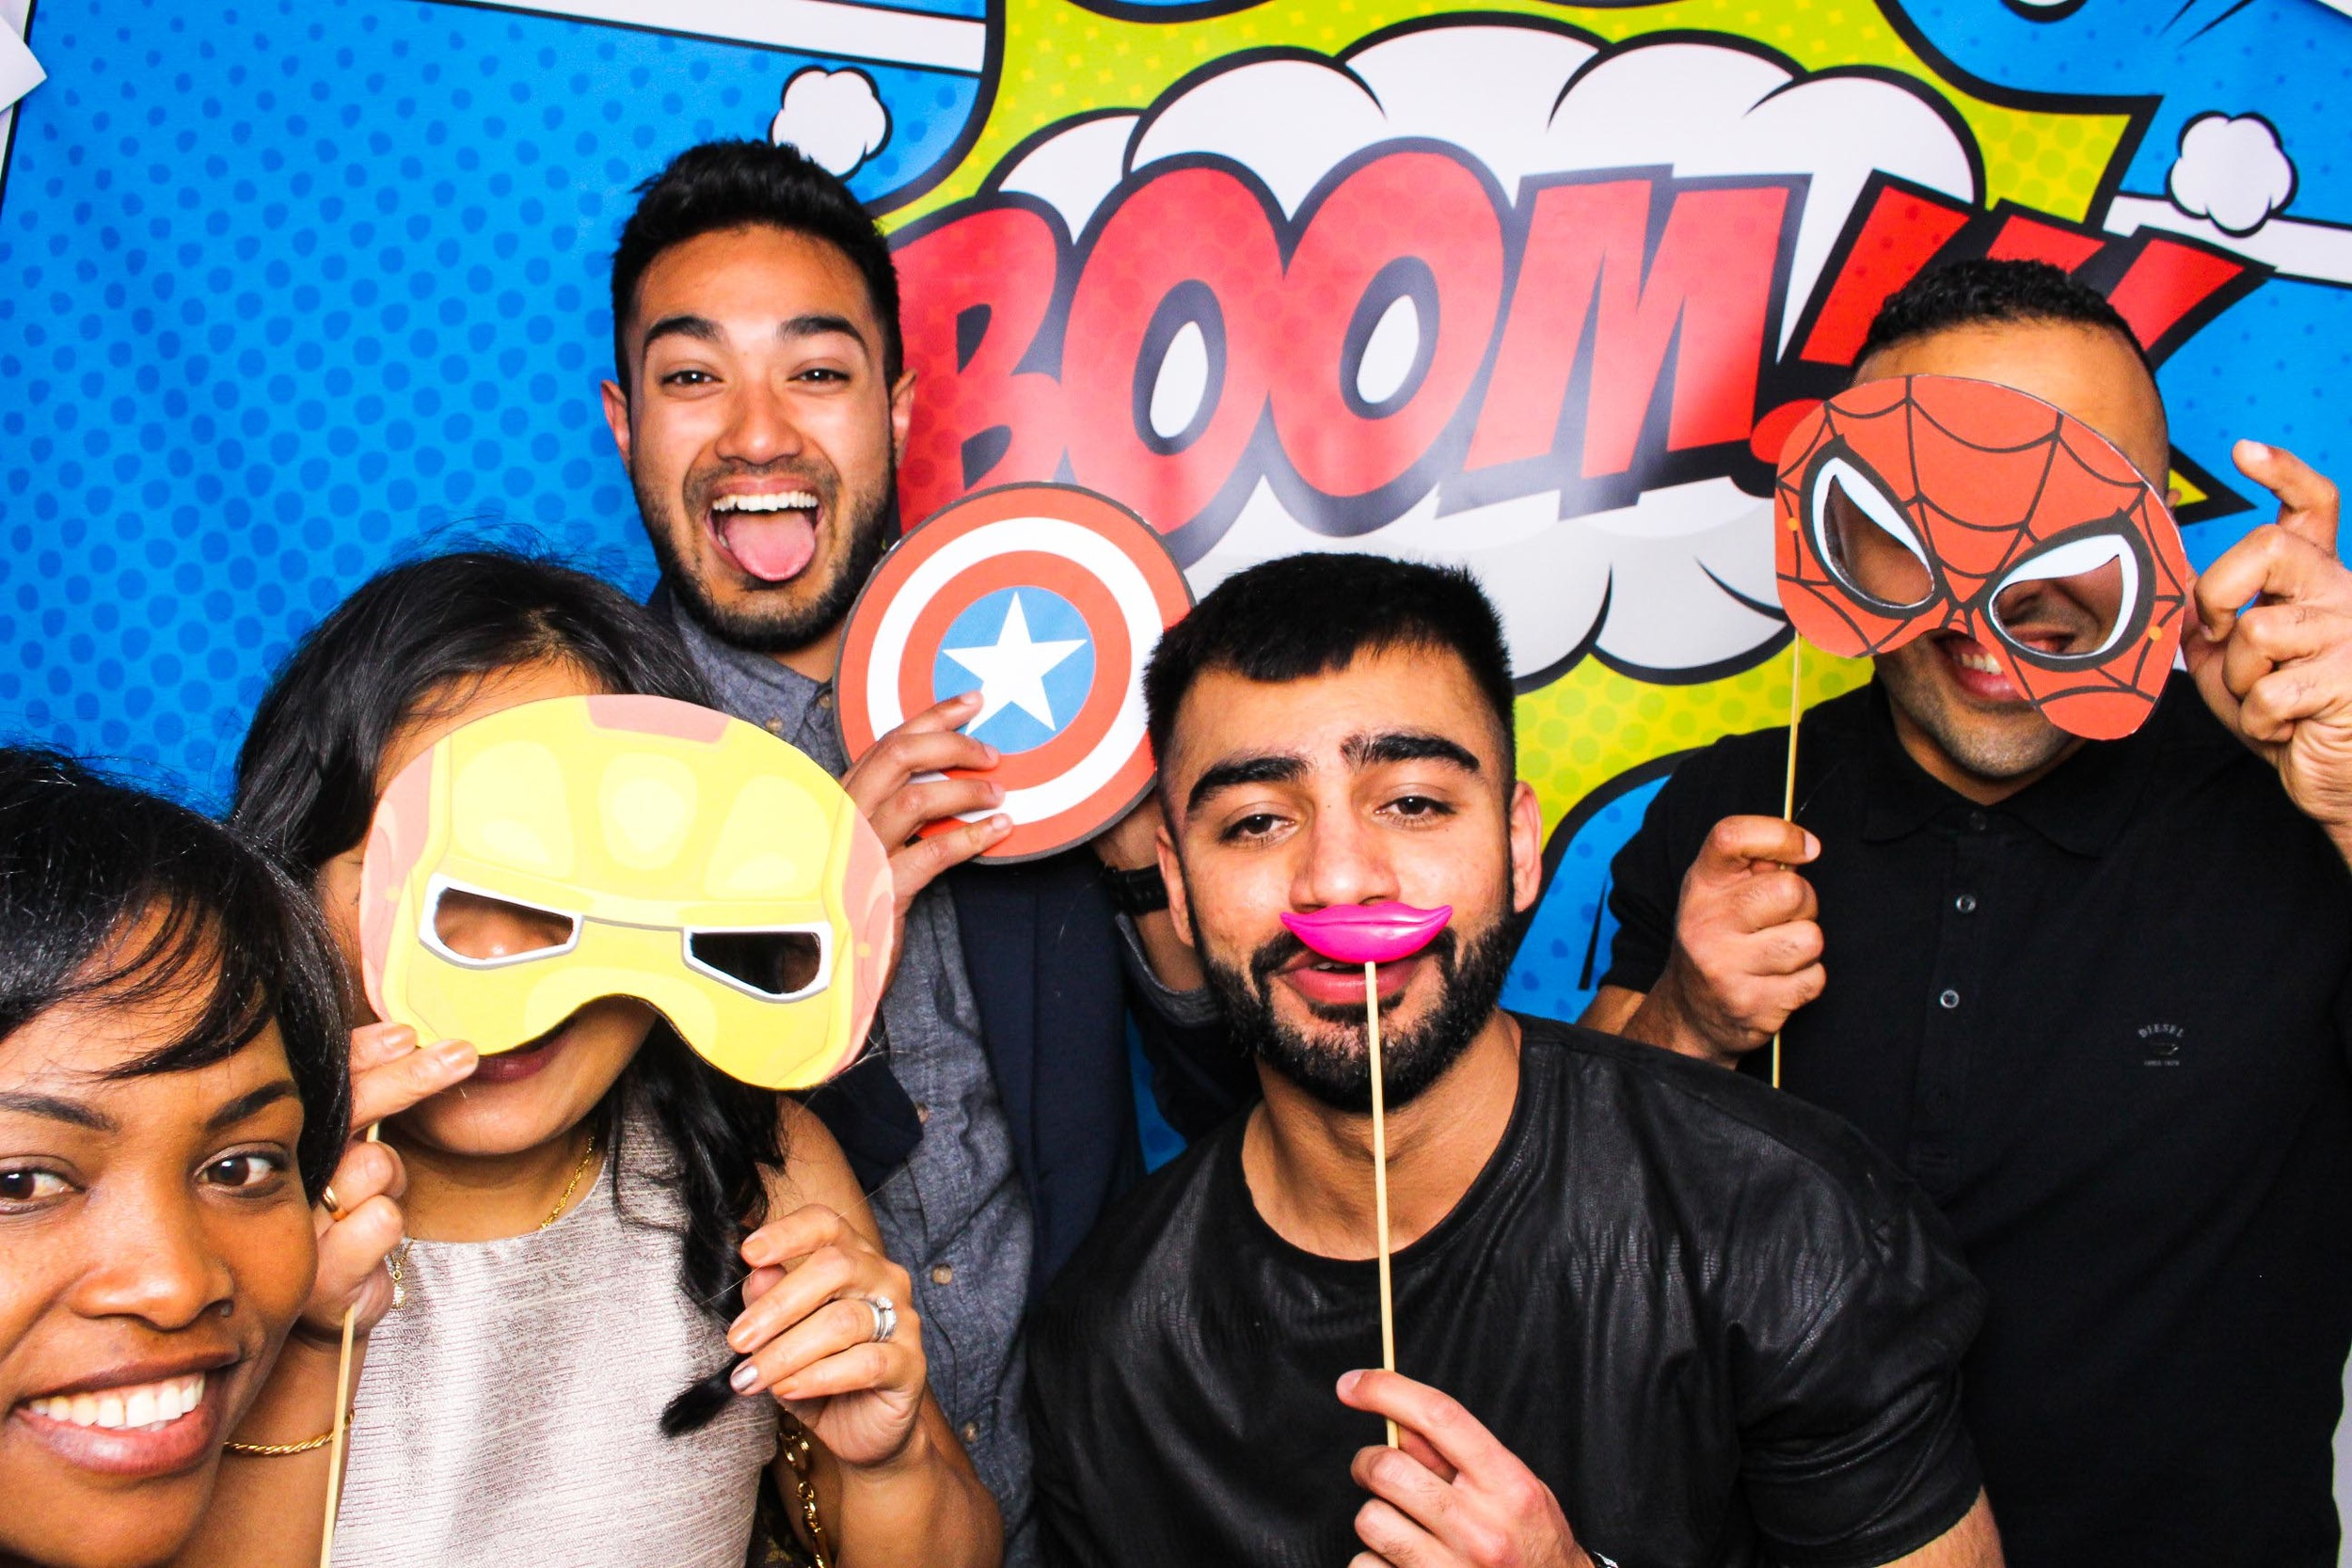 Fotoauto Photo Booth Hire - Shop Direct-211.jpg